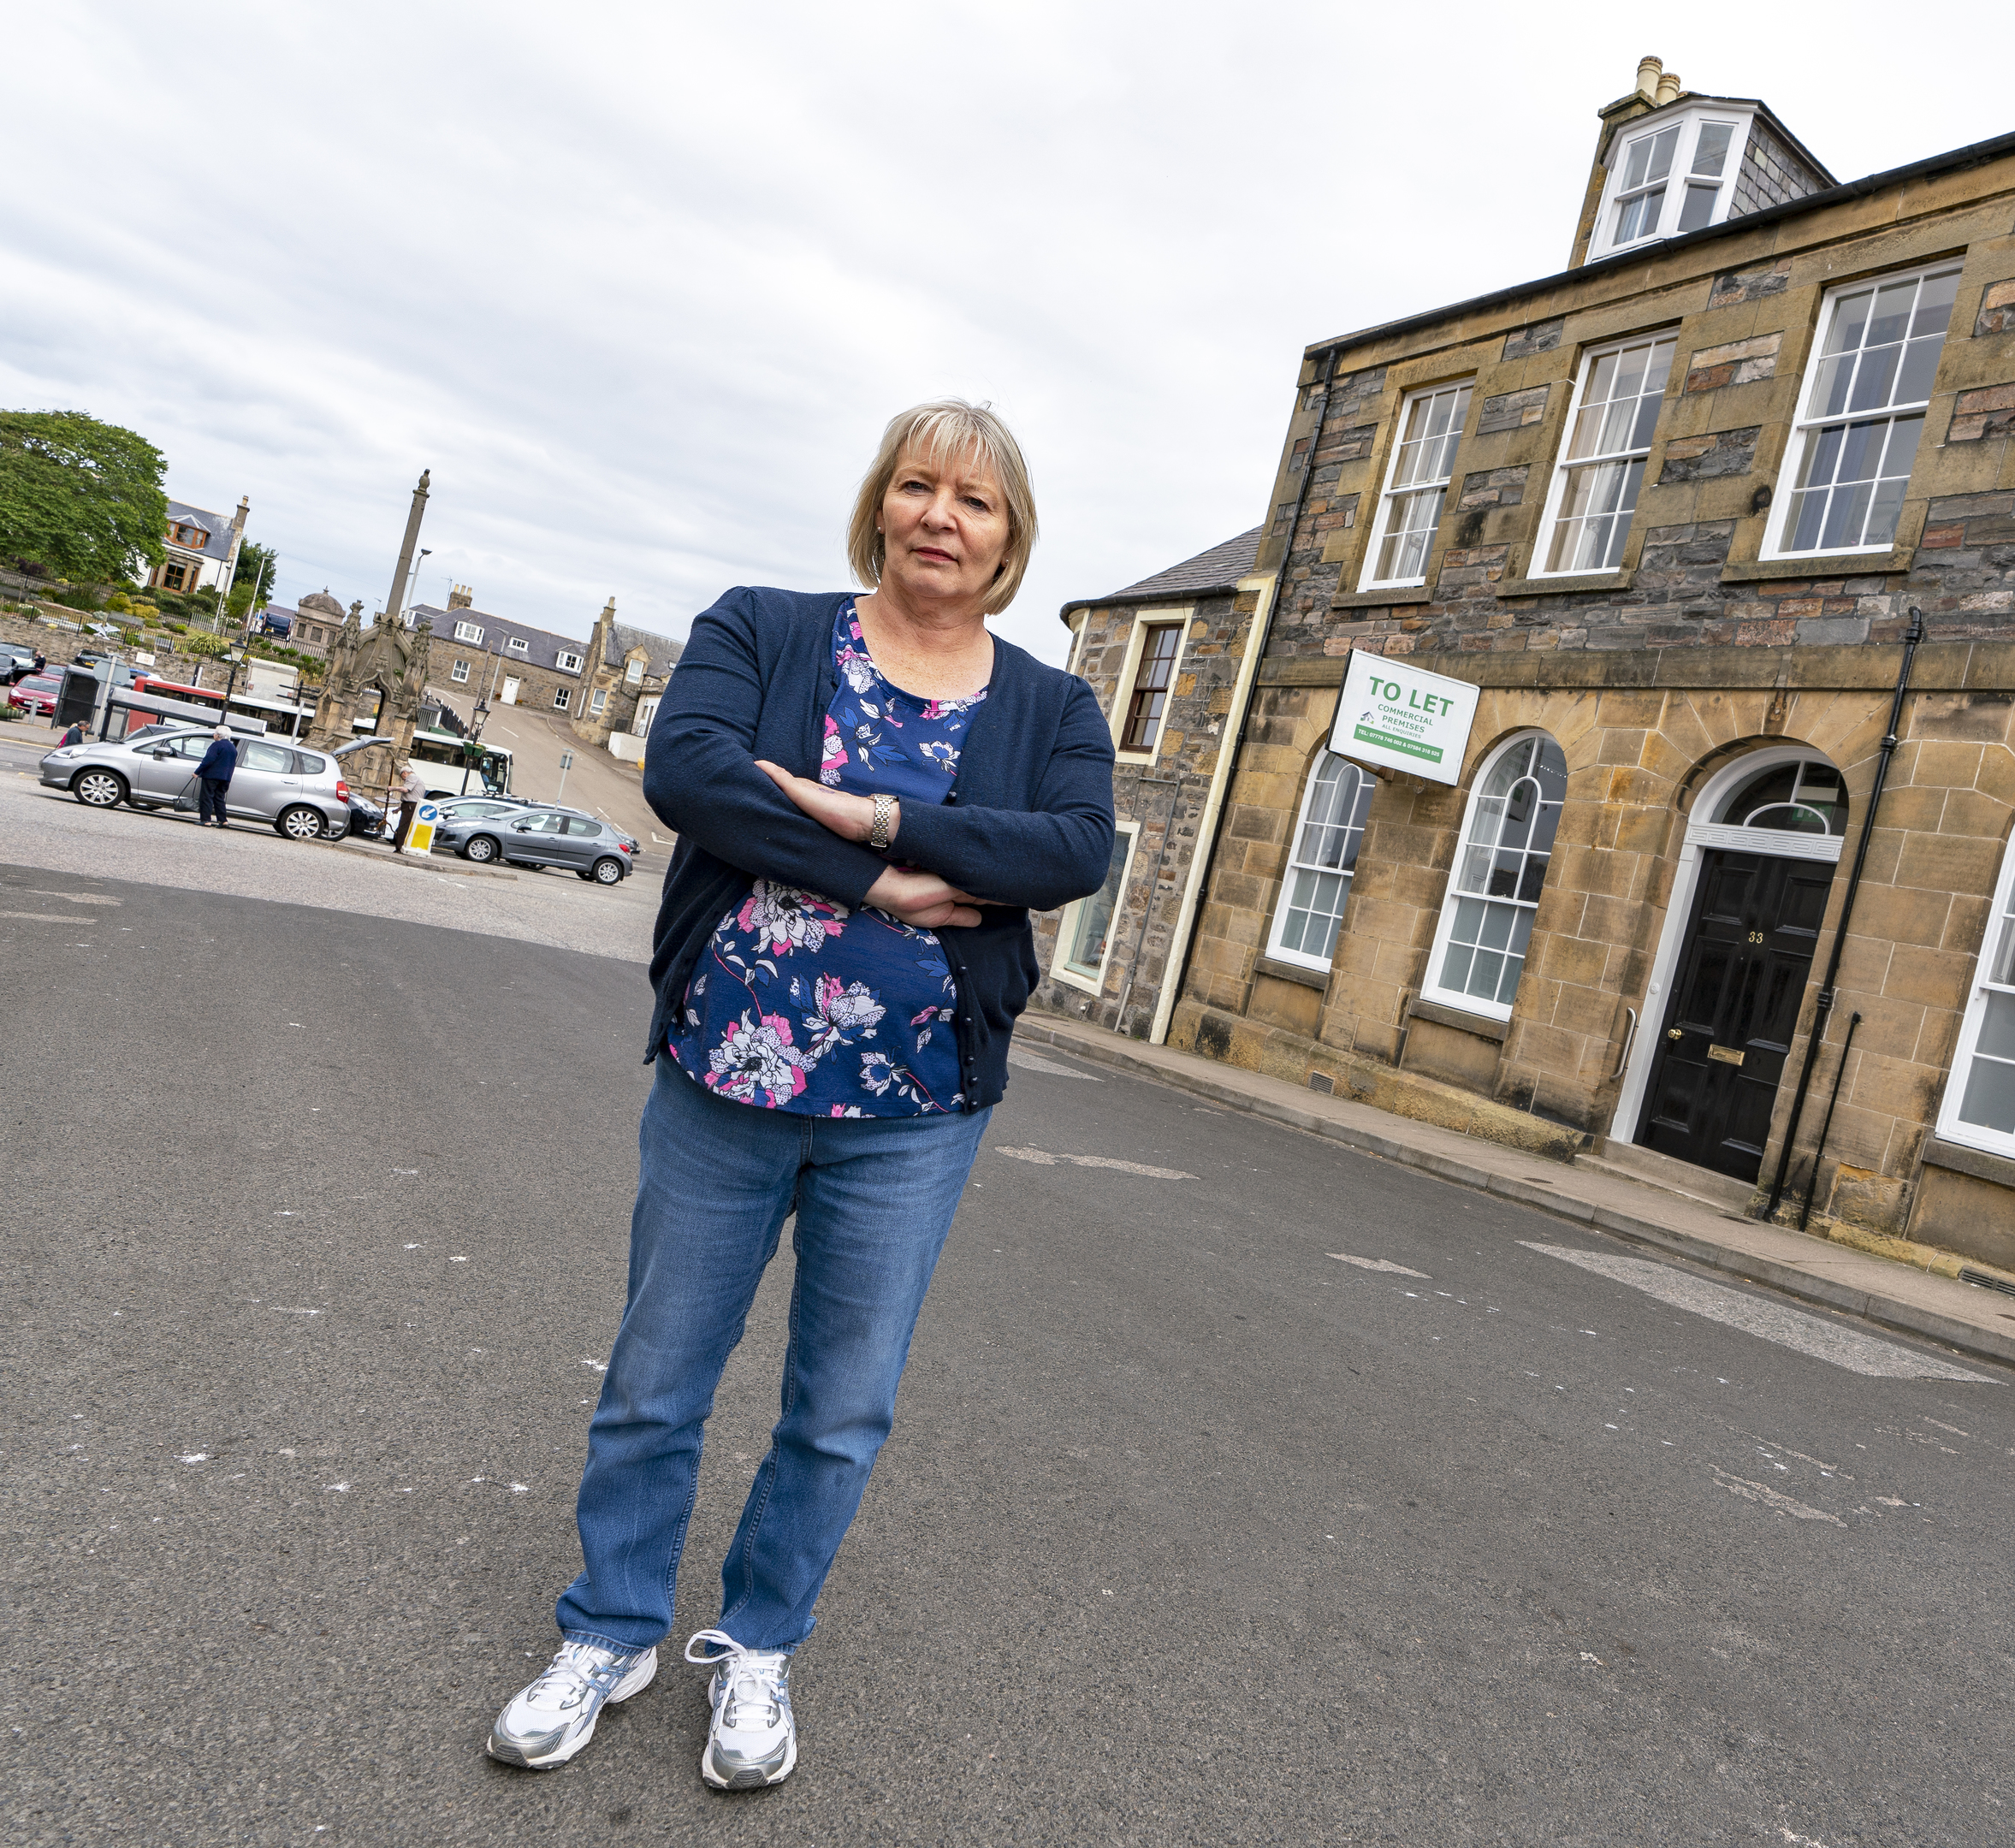 This is Clr Theresa Coull of Keith and Cullen Ditrict outside the now closed Bank of Scotland in Grant Street, Cullen, Moray on Monday 9 July 2018. They are to start a new campaign to bring an ATM to the town. Photographed by Brian Smith T/A Jasperimage. ©